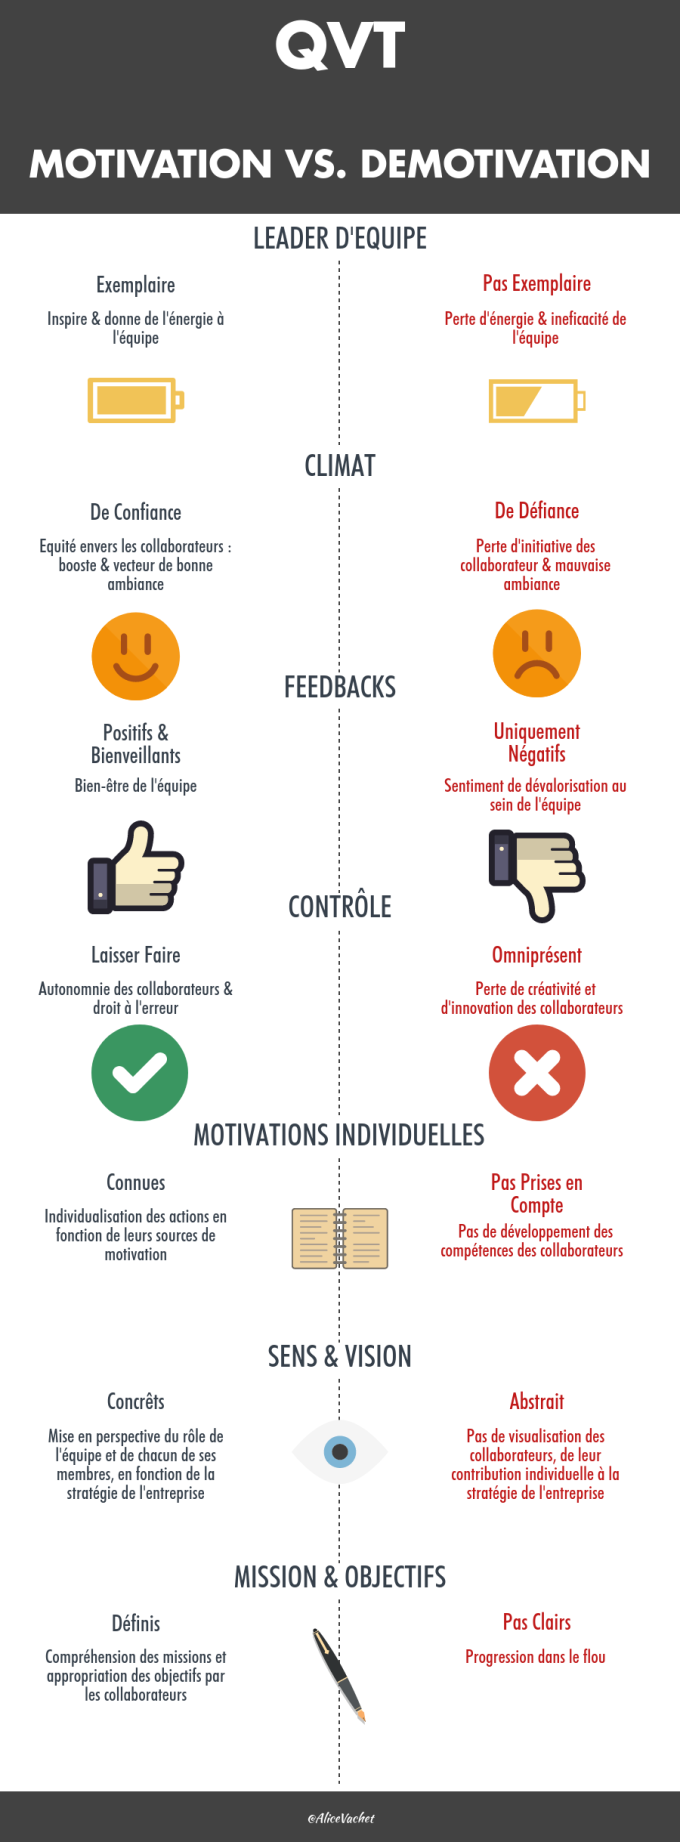 [INFOGRAPHIE] QVT :  Motivation Vs. Démotivation